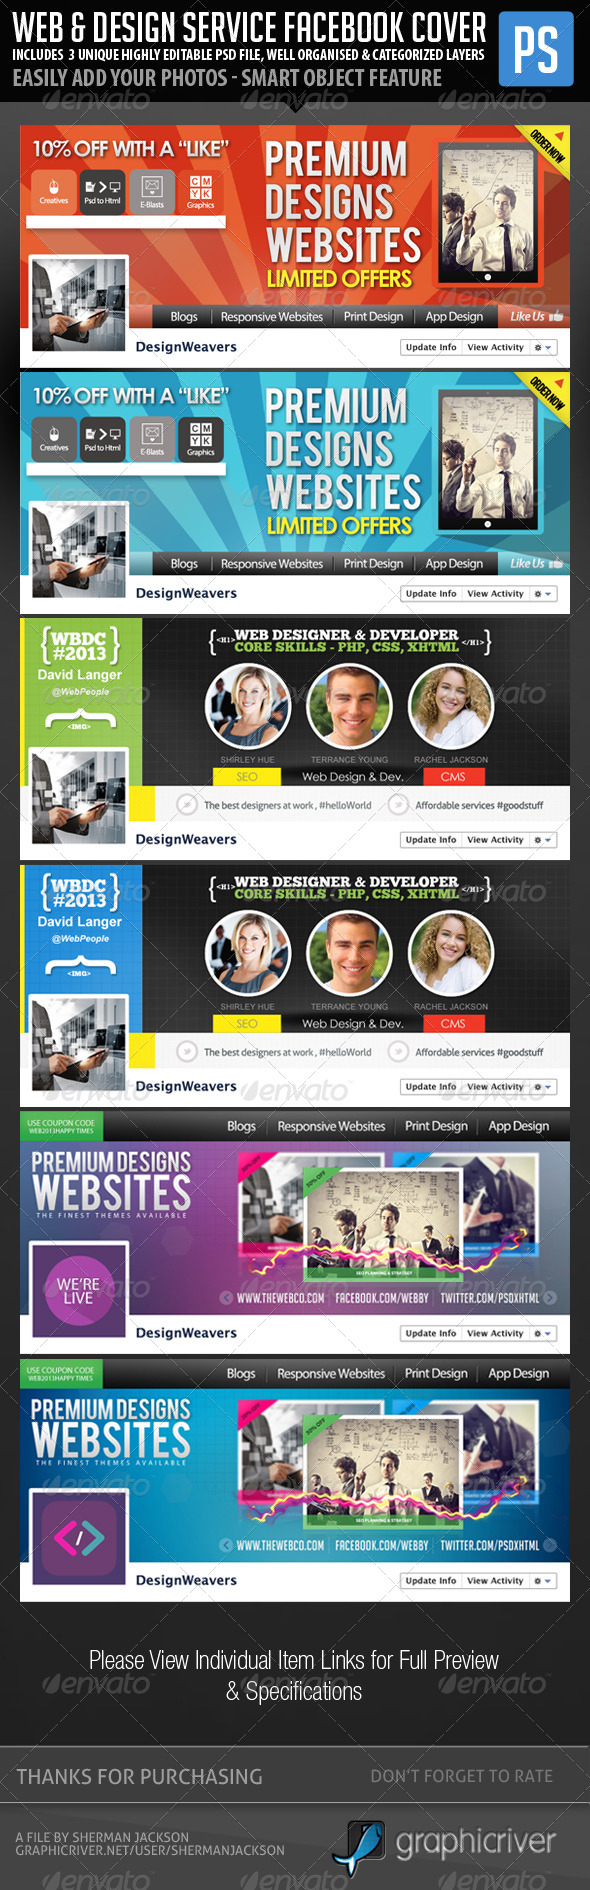 GraphicRiver Web & Graphic Design Service Facebook Bundle 6450283